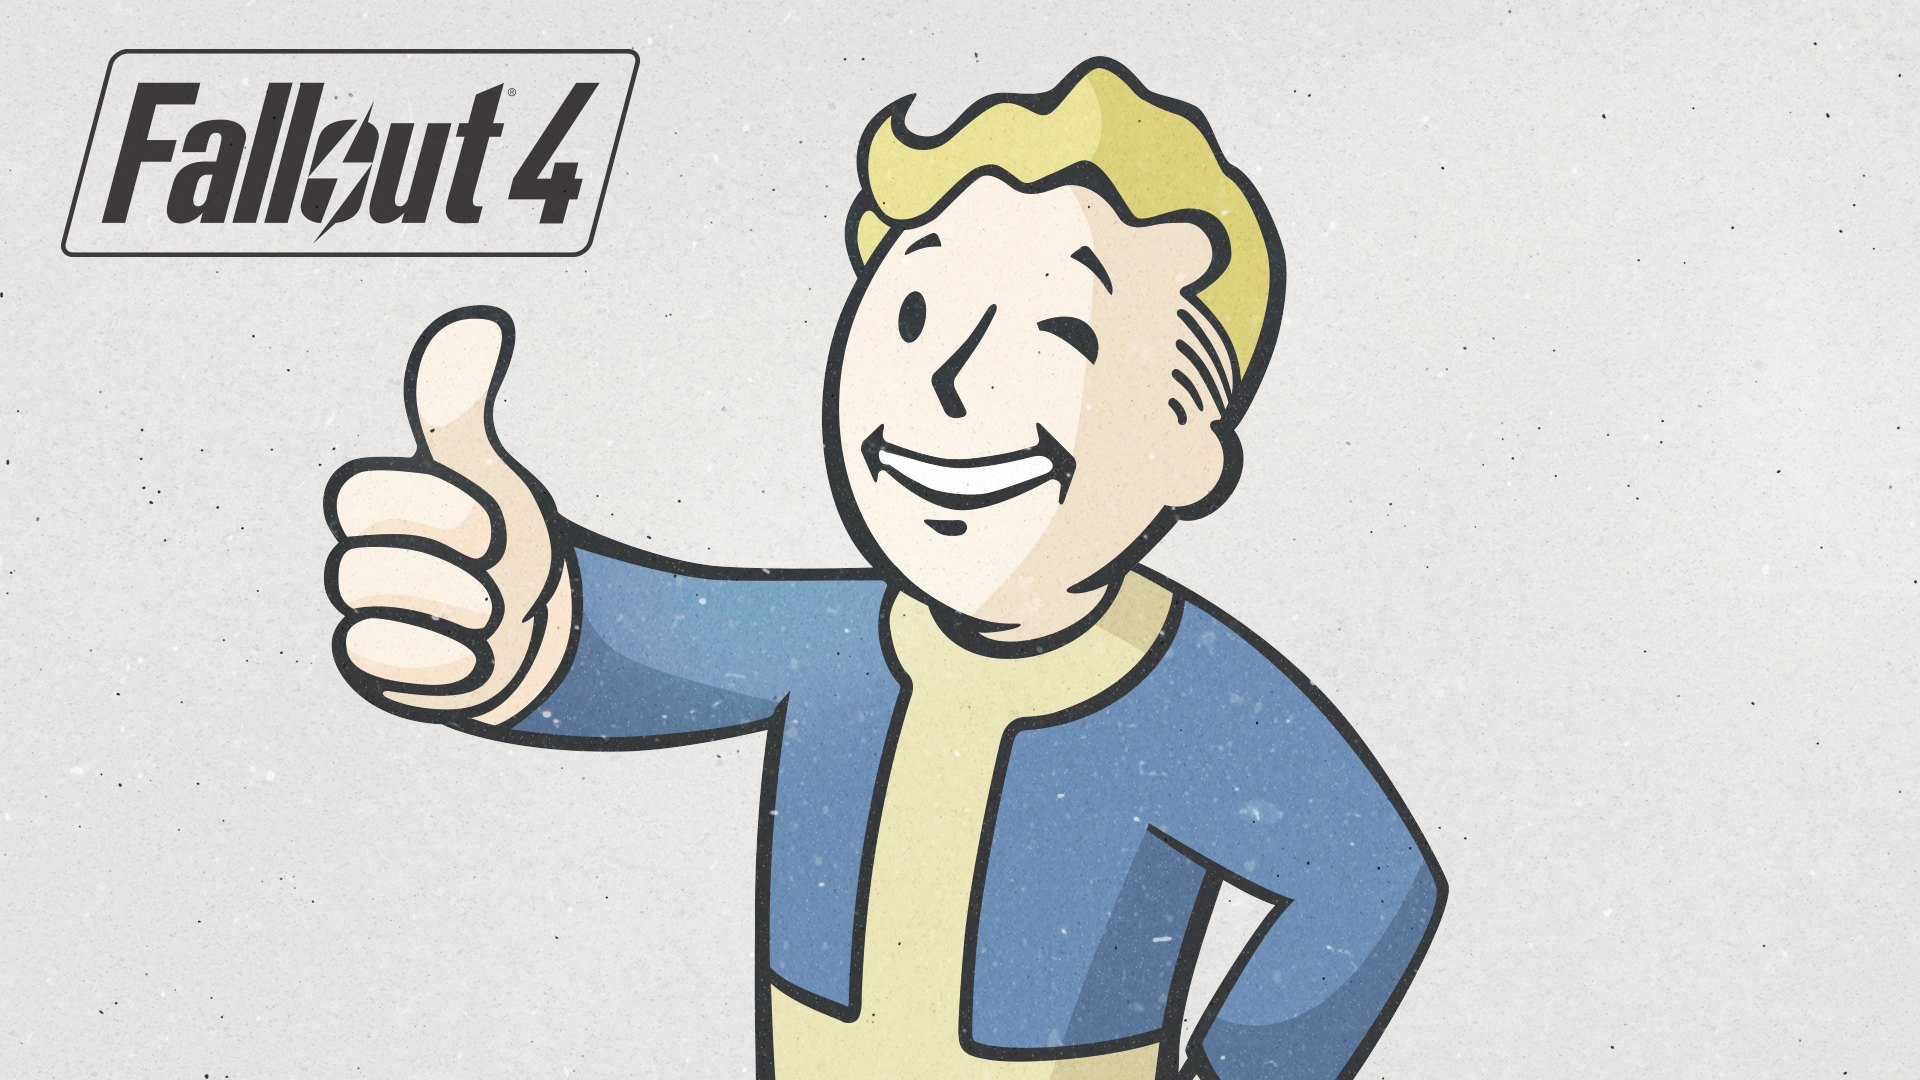 www.dare2think.dk/images/photoalbum/album_42/fallout4poster.jpg